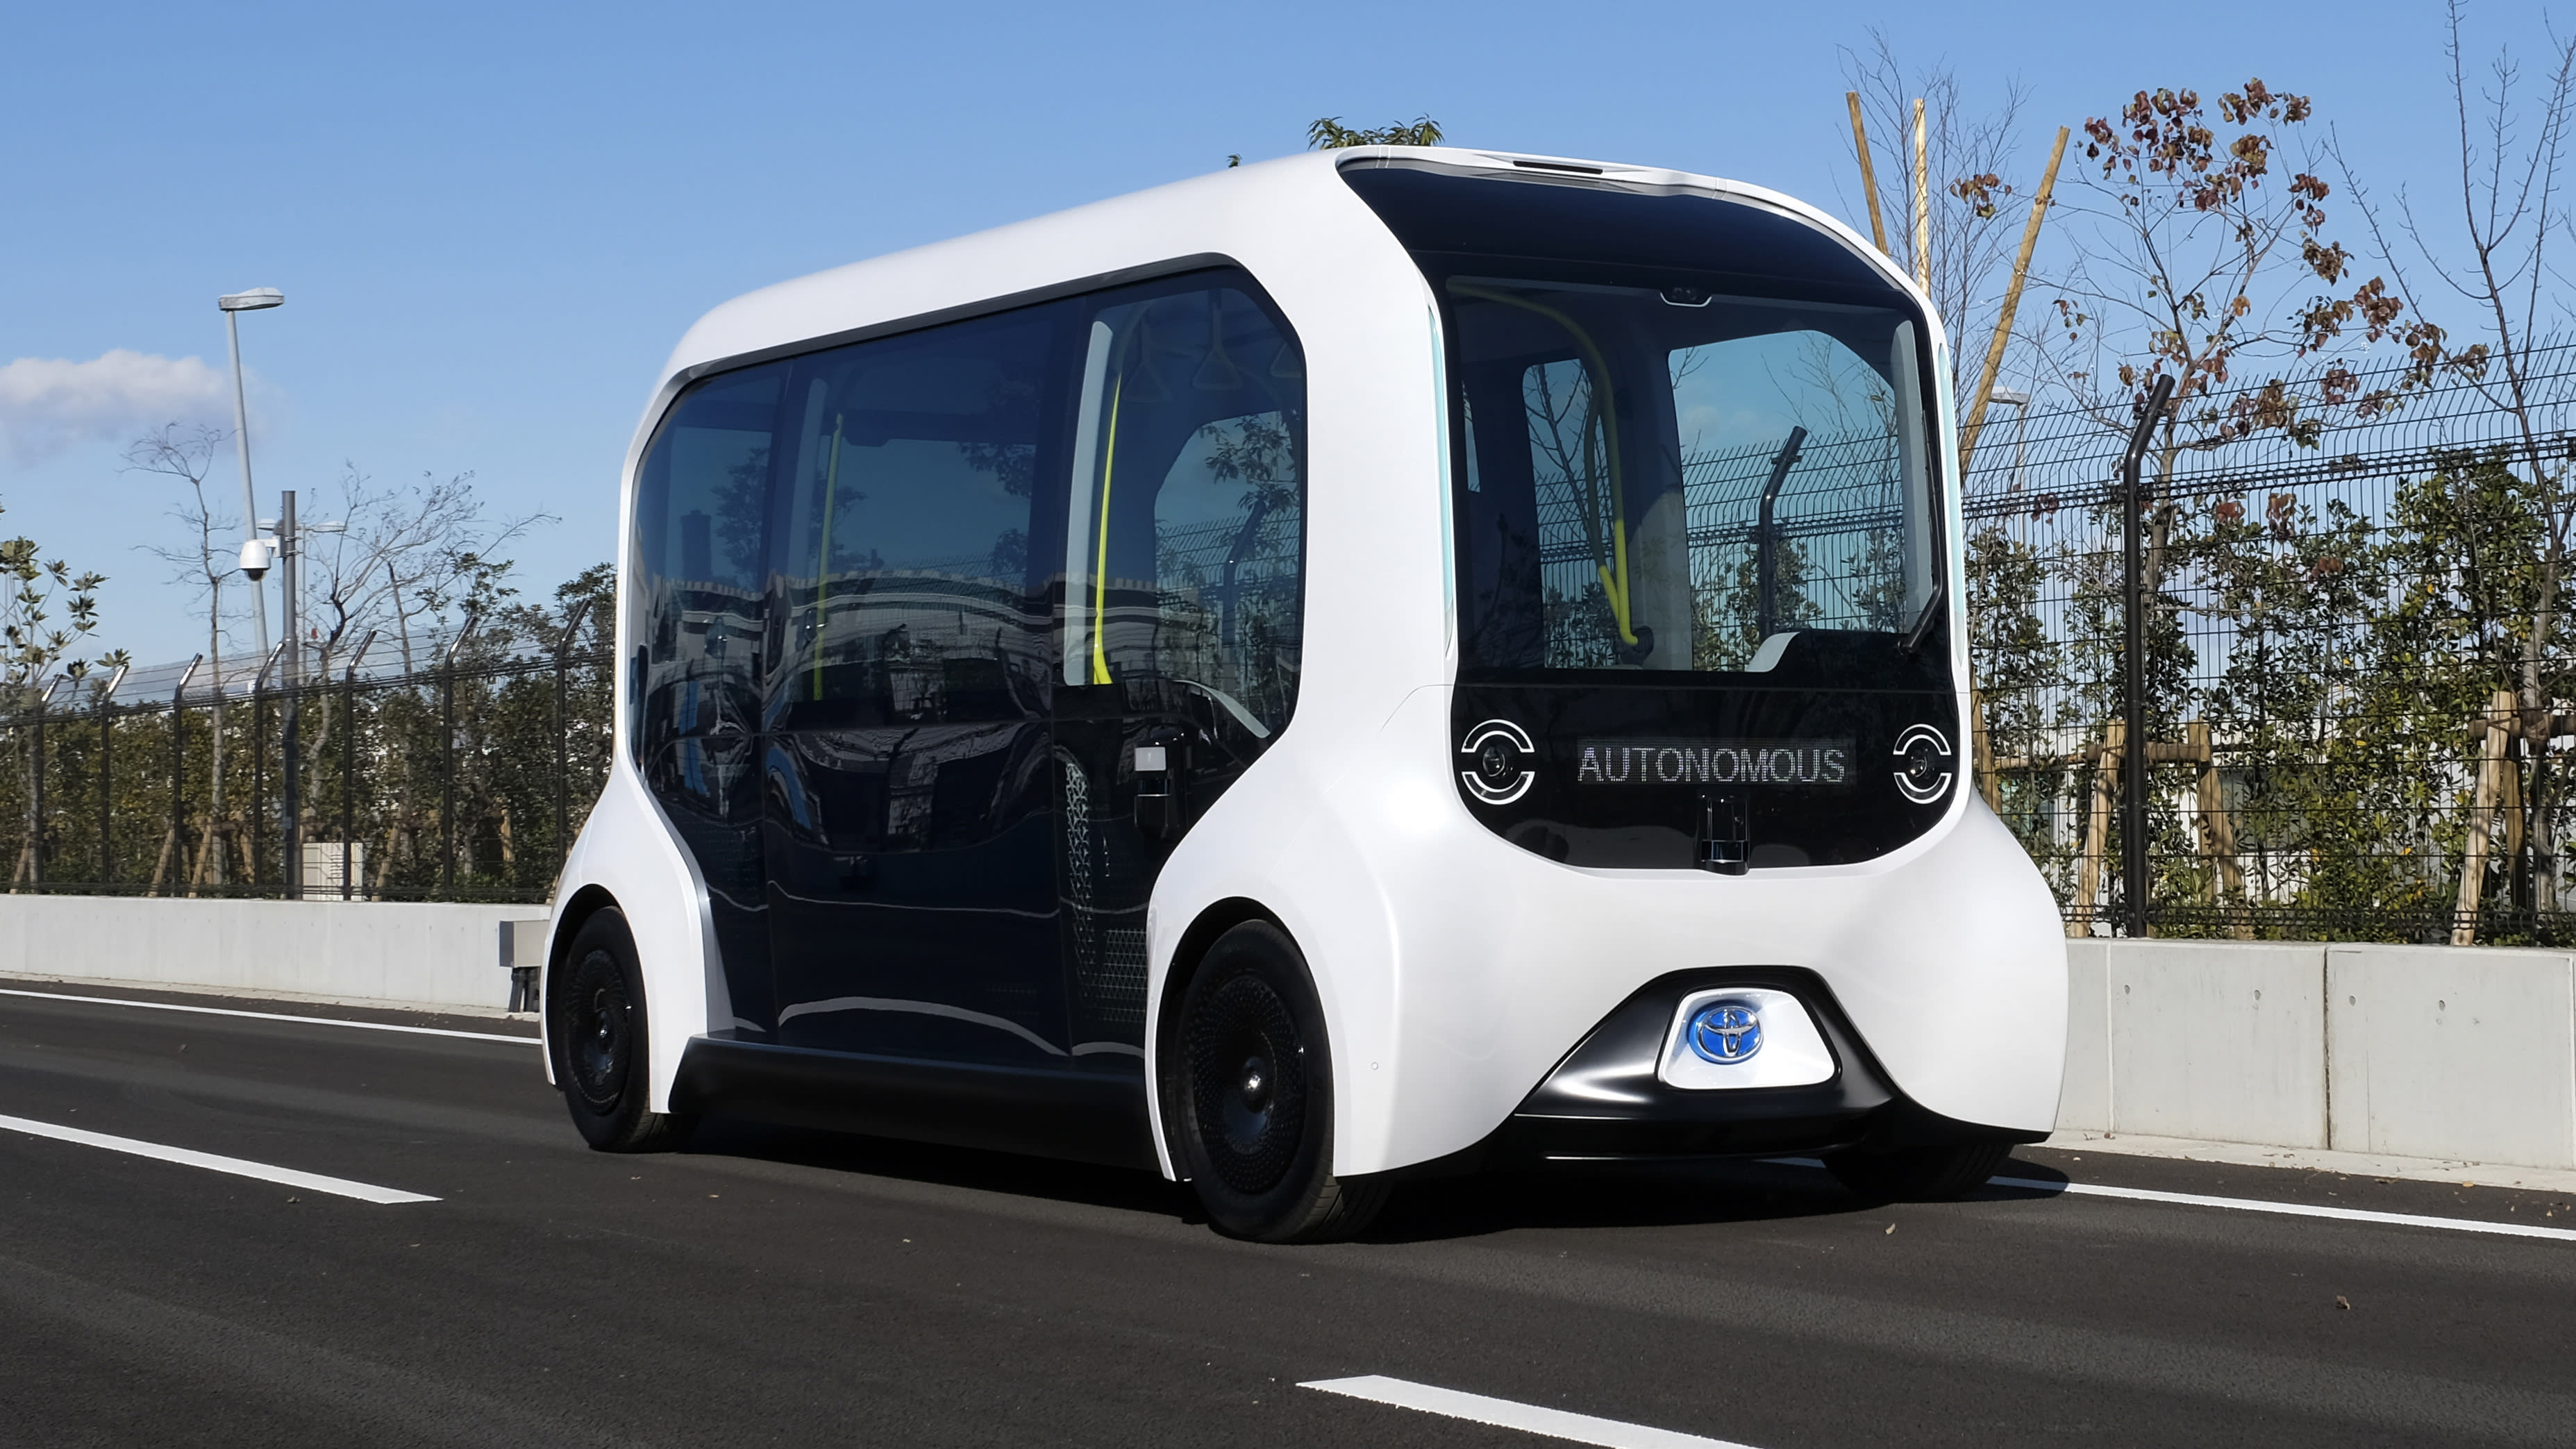 """Toyota e-Palette autonomous vehicles to be rolled out """"within the next few years"""""""